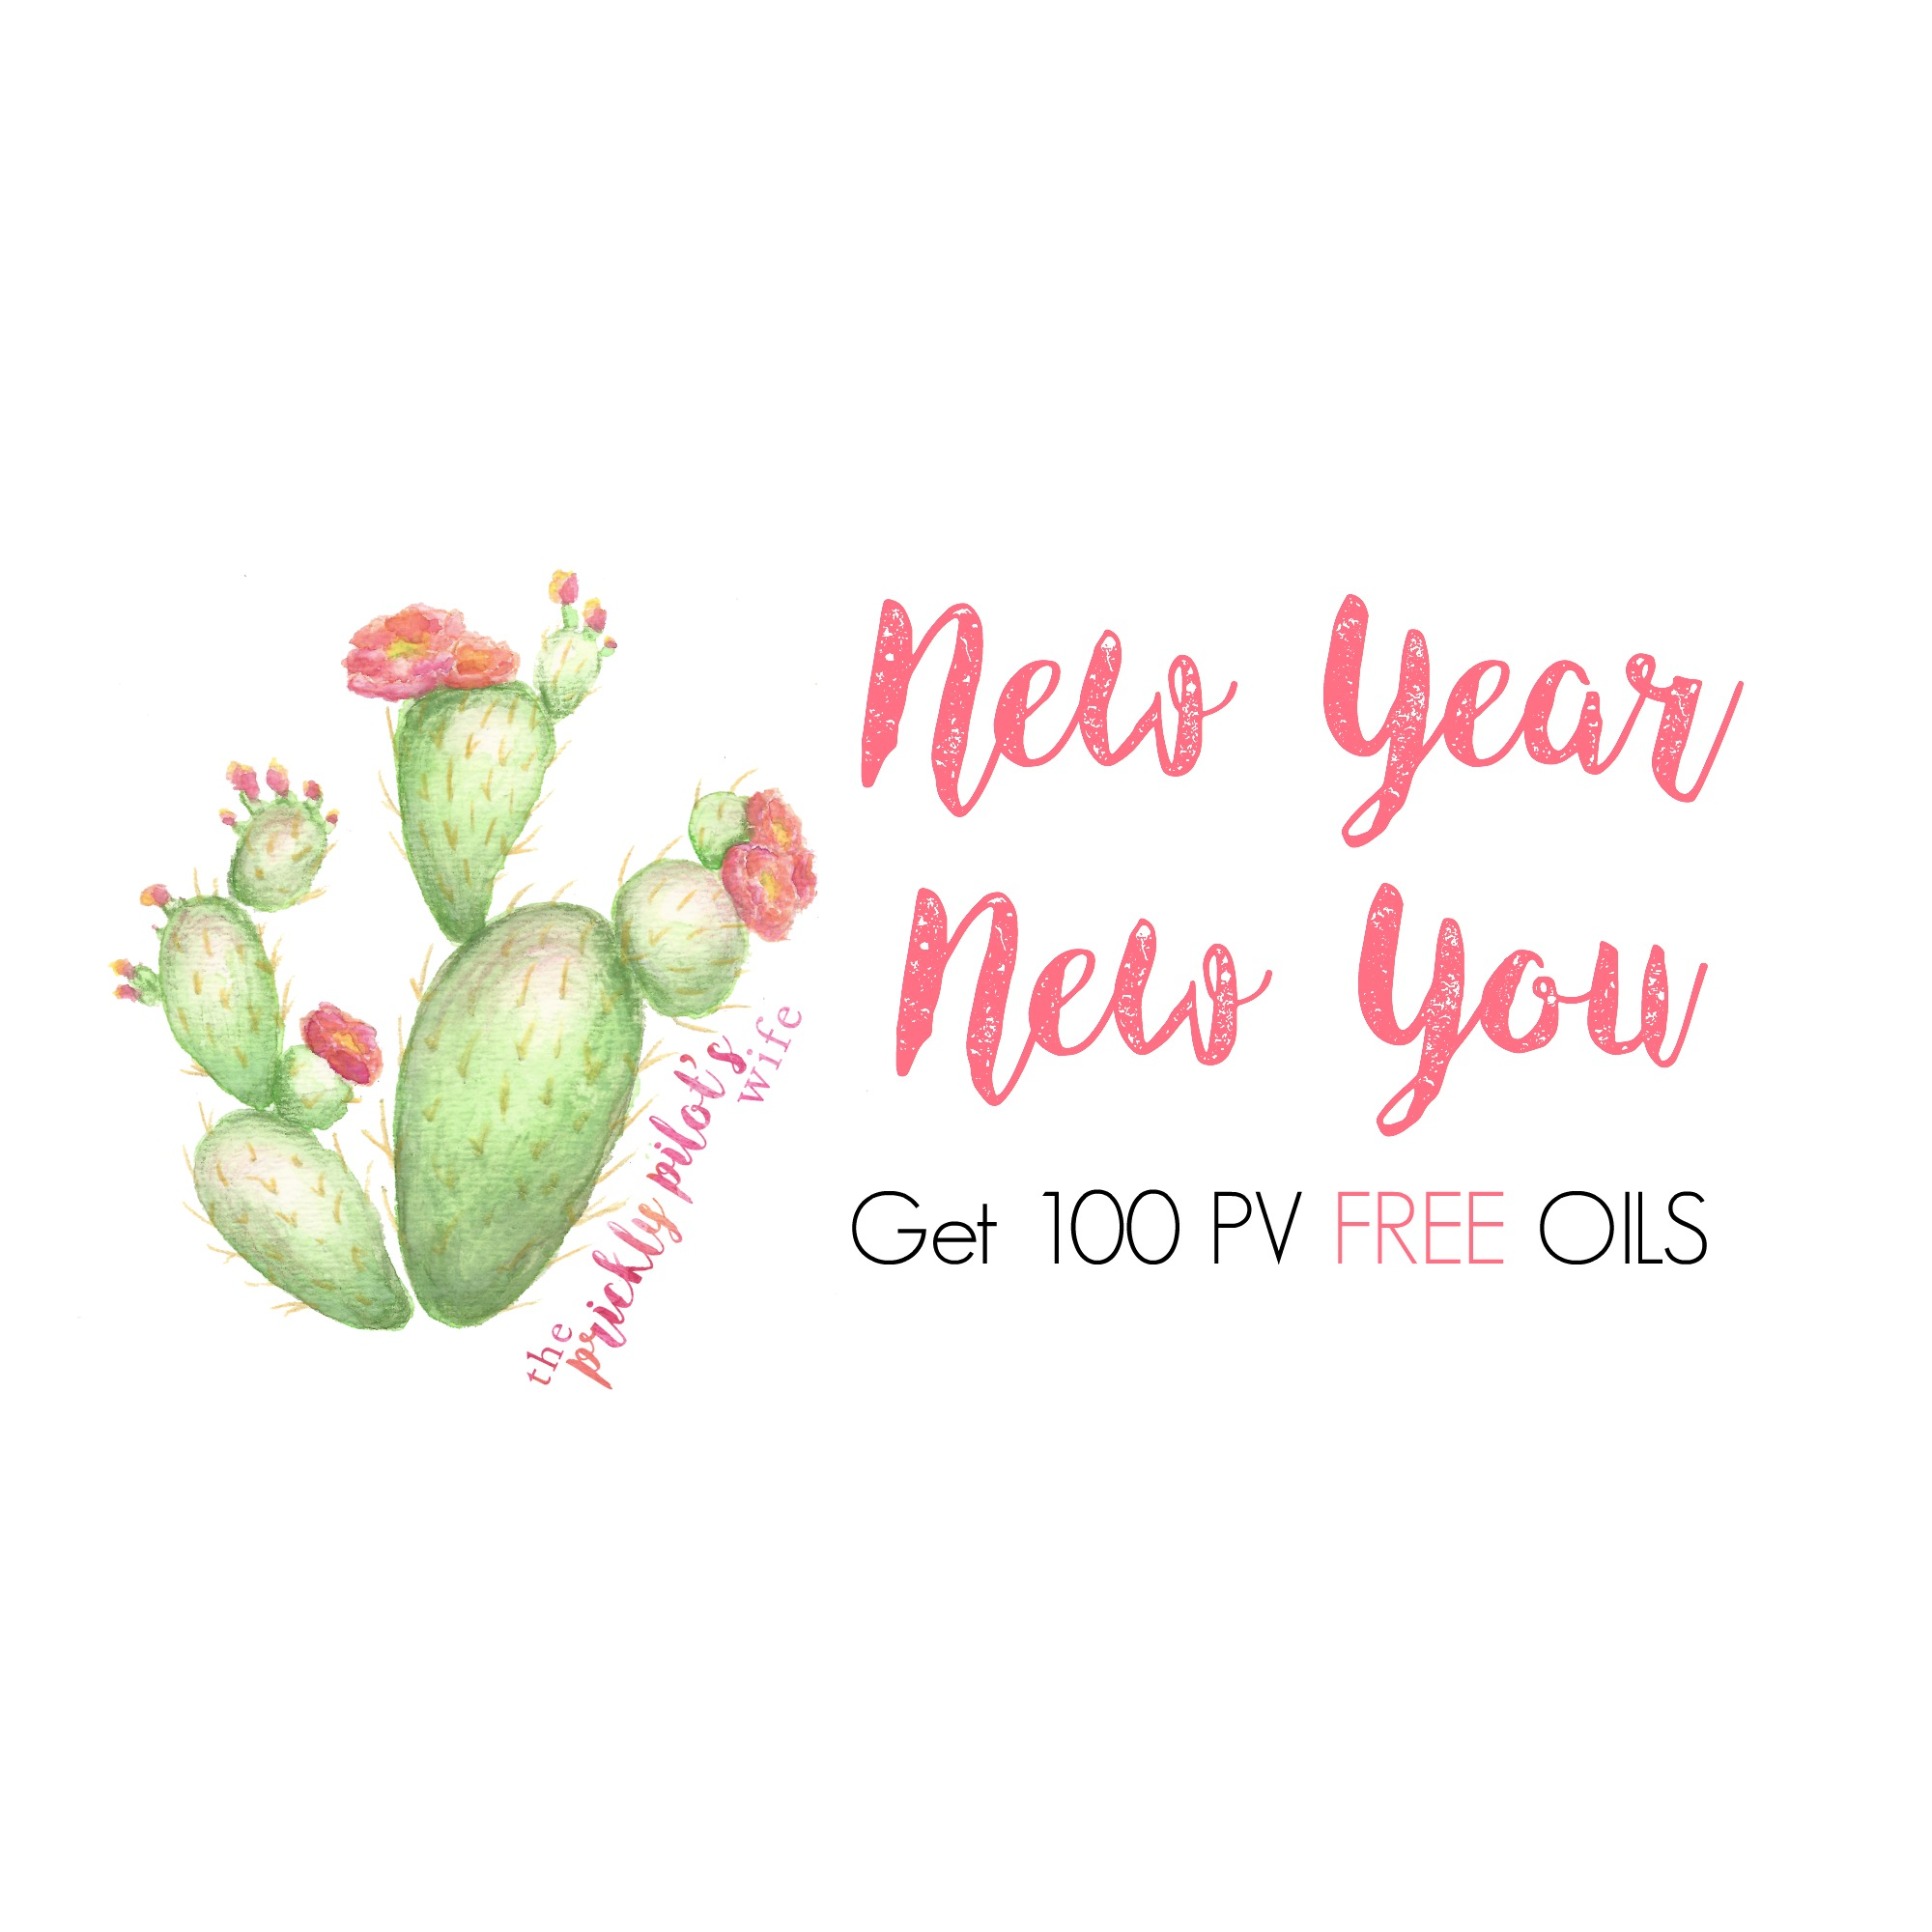 New Year New You 2017 - doTERRA Essential Oils